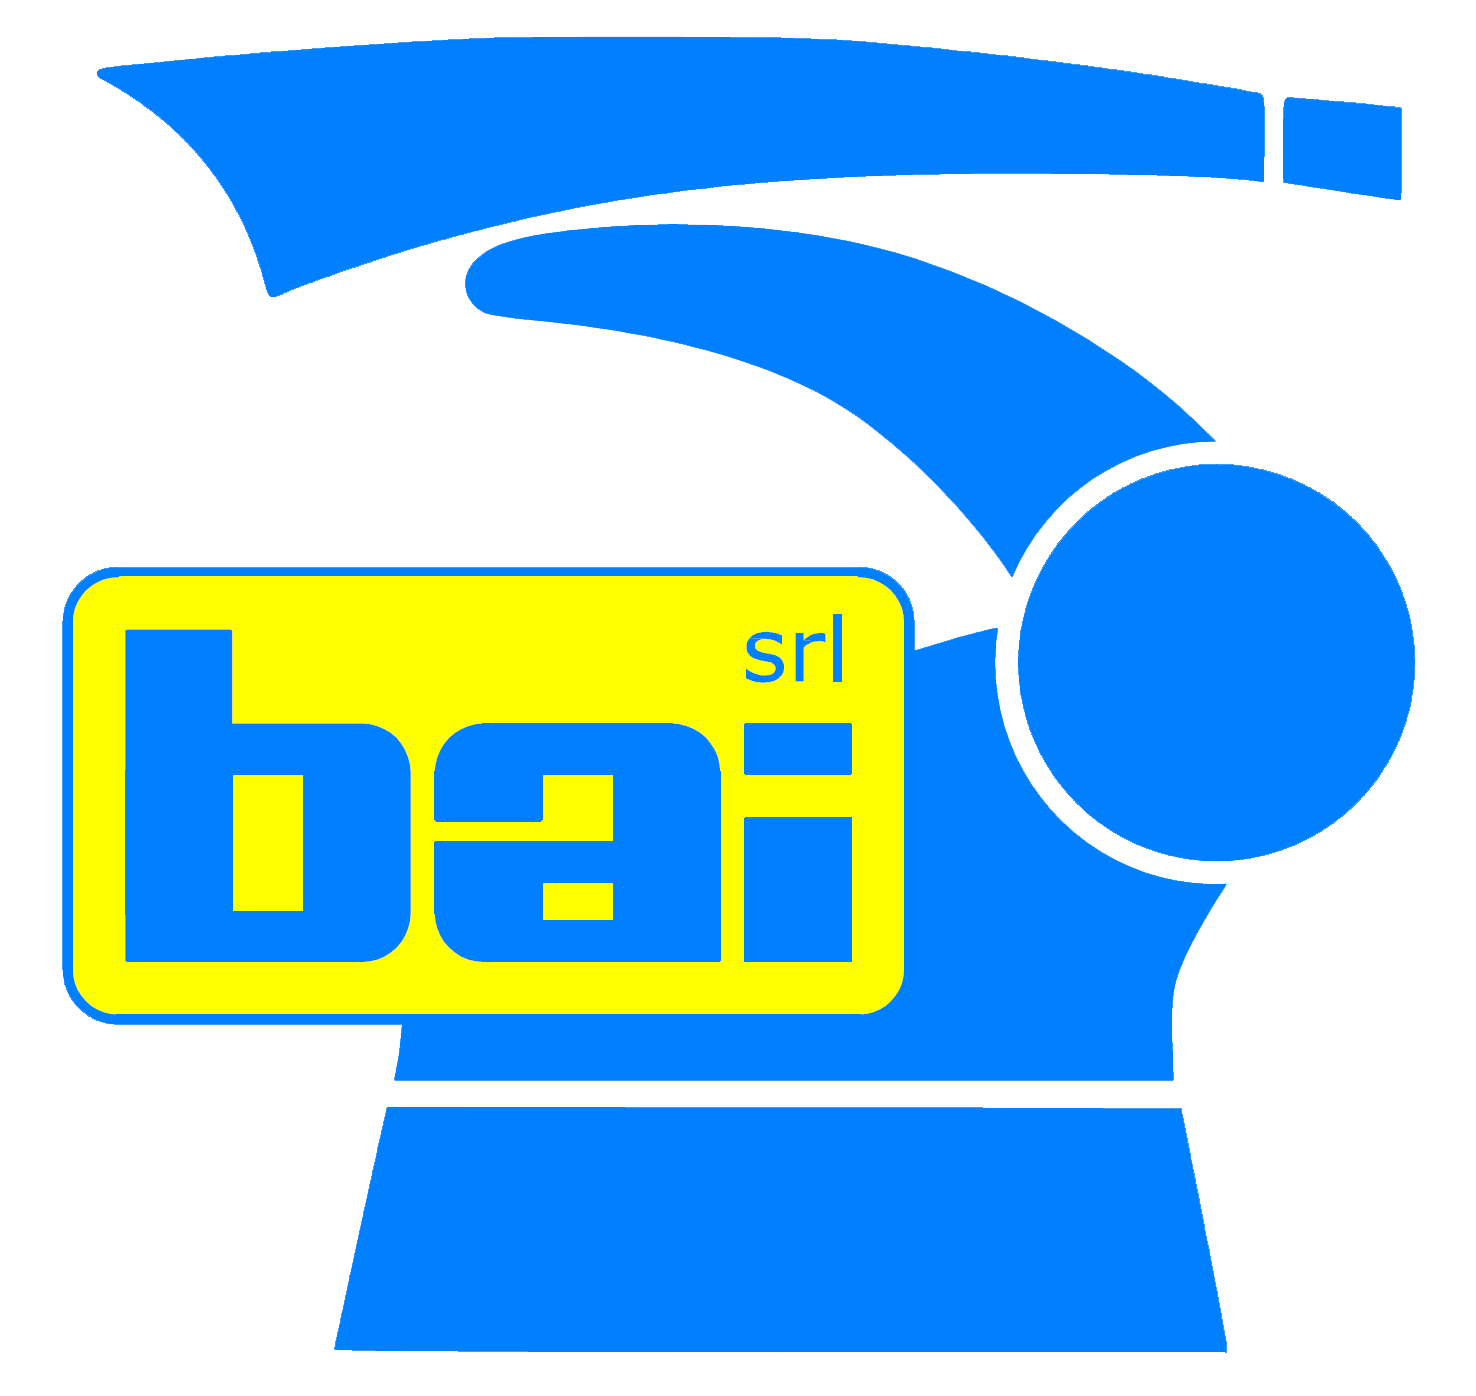 BAI - Barison Industrial Automation